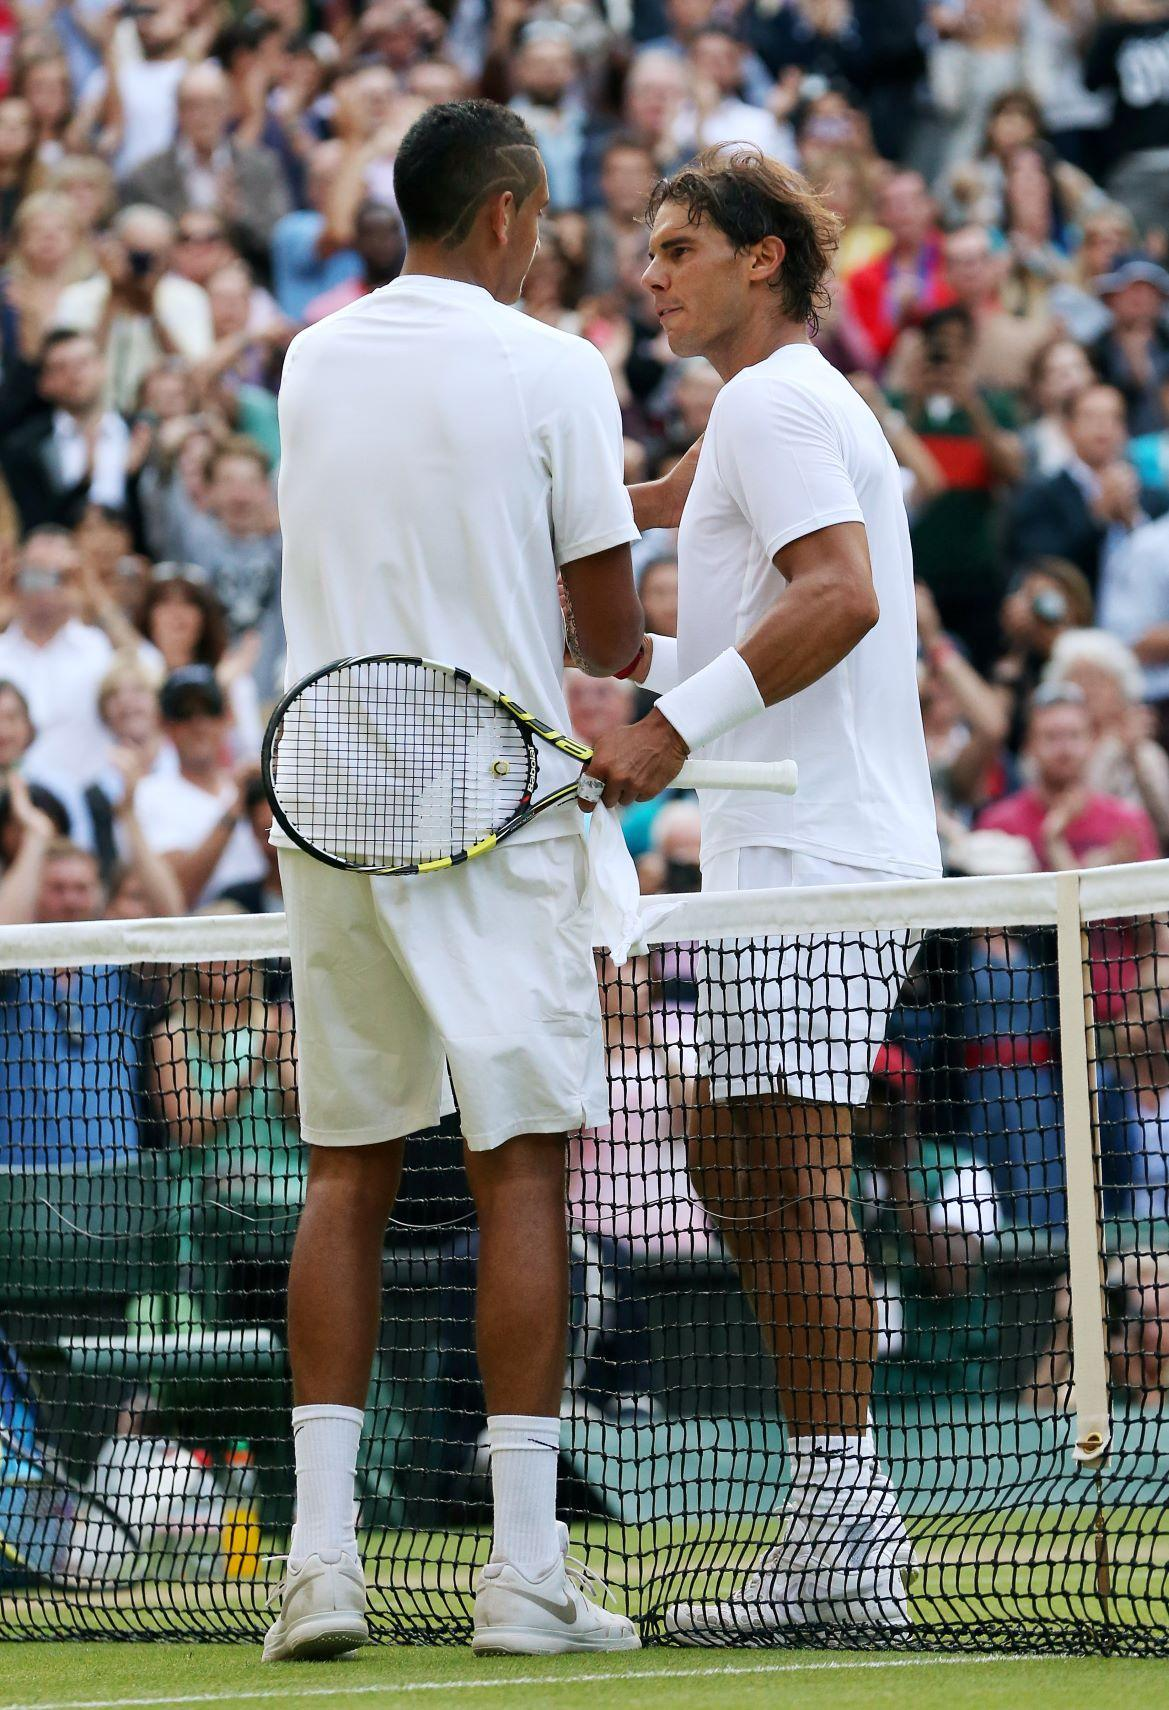 Nadal Faces Potential Kyrgios Grudge Match At Wimbledon